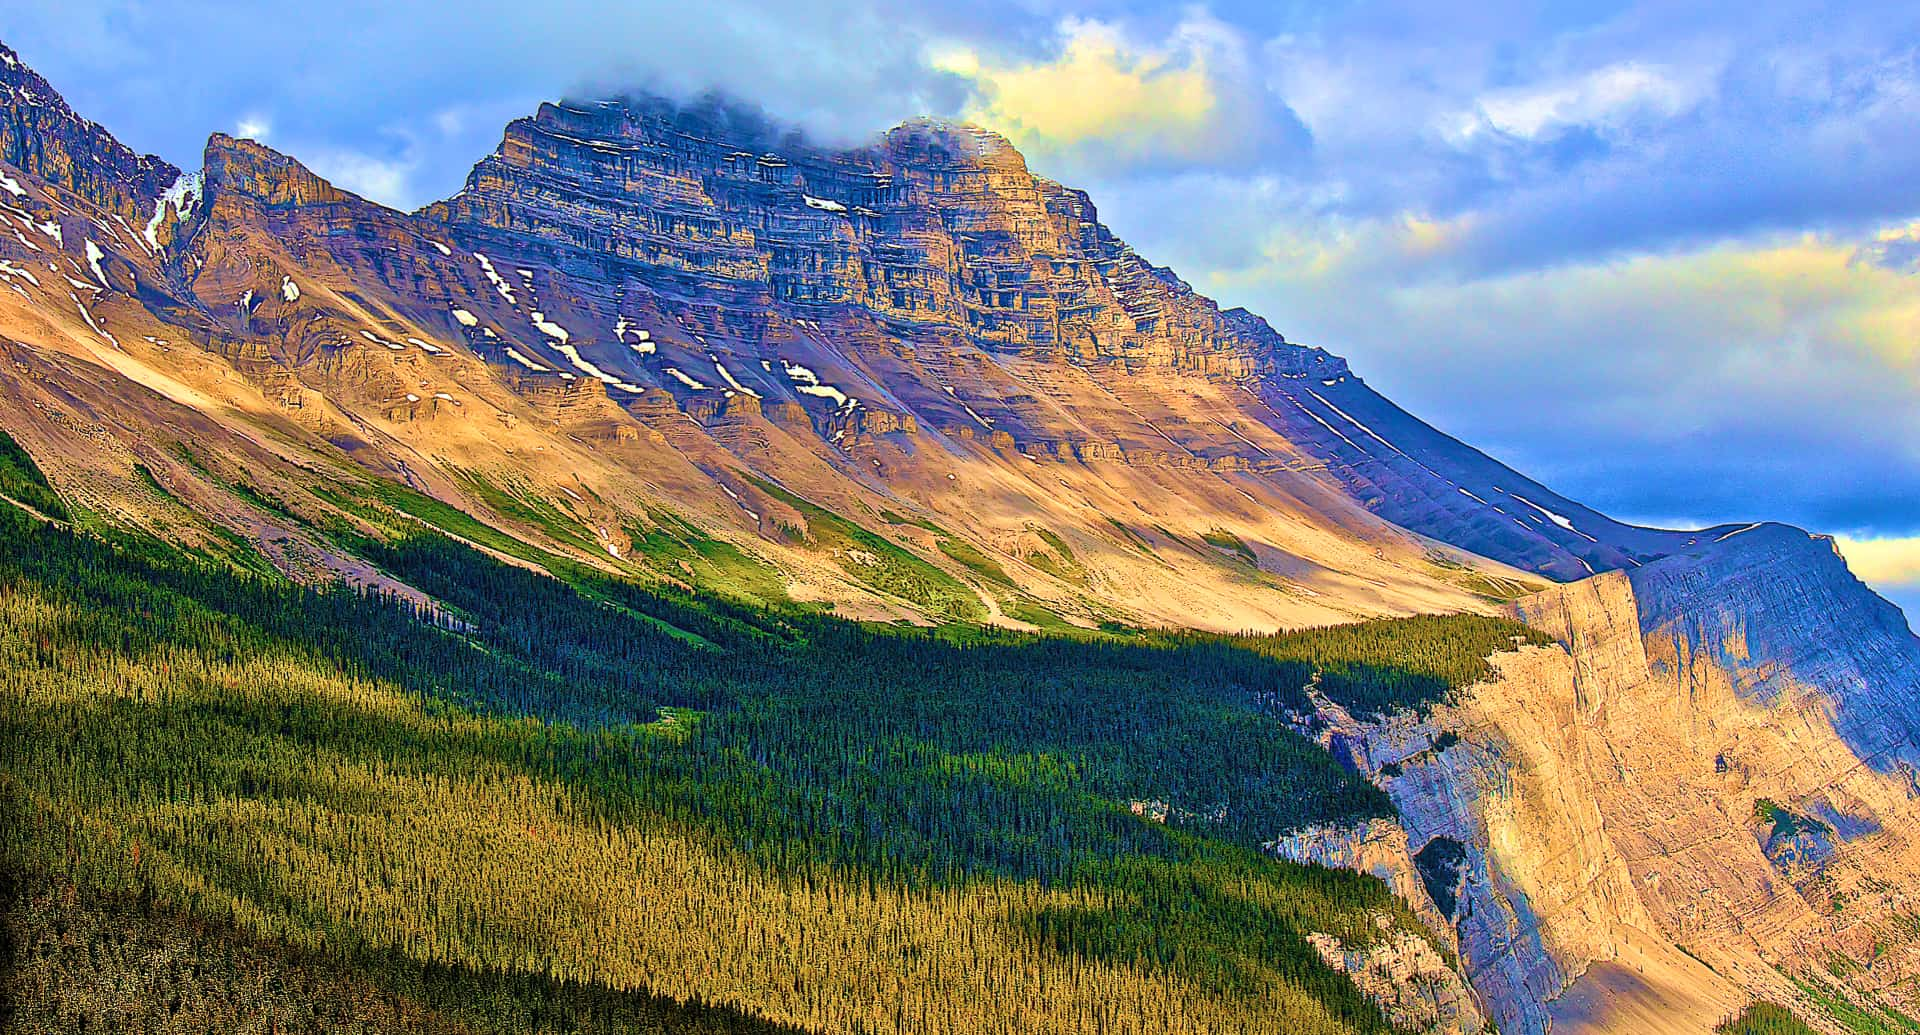 Planning to visit Banff in three days? Here you'll find the ultimate Banff three day itinerary!